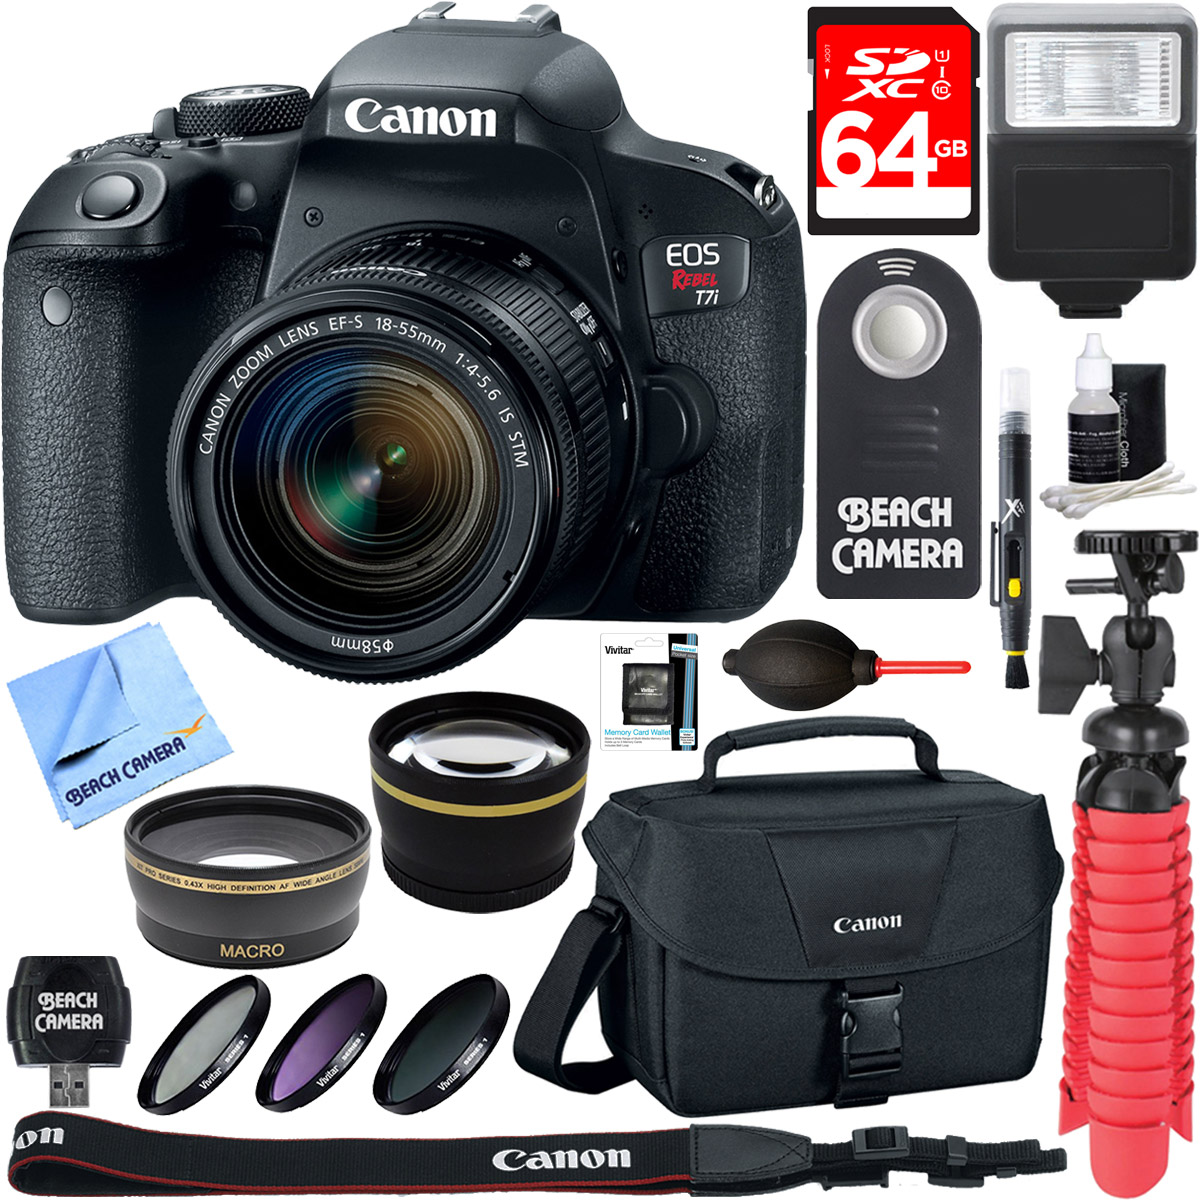 Canon EOS Rebel T7i Digital SLR Camera with EF-S 18-55mm